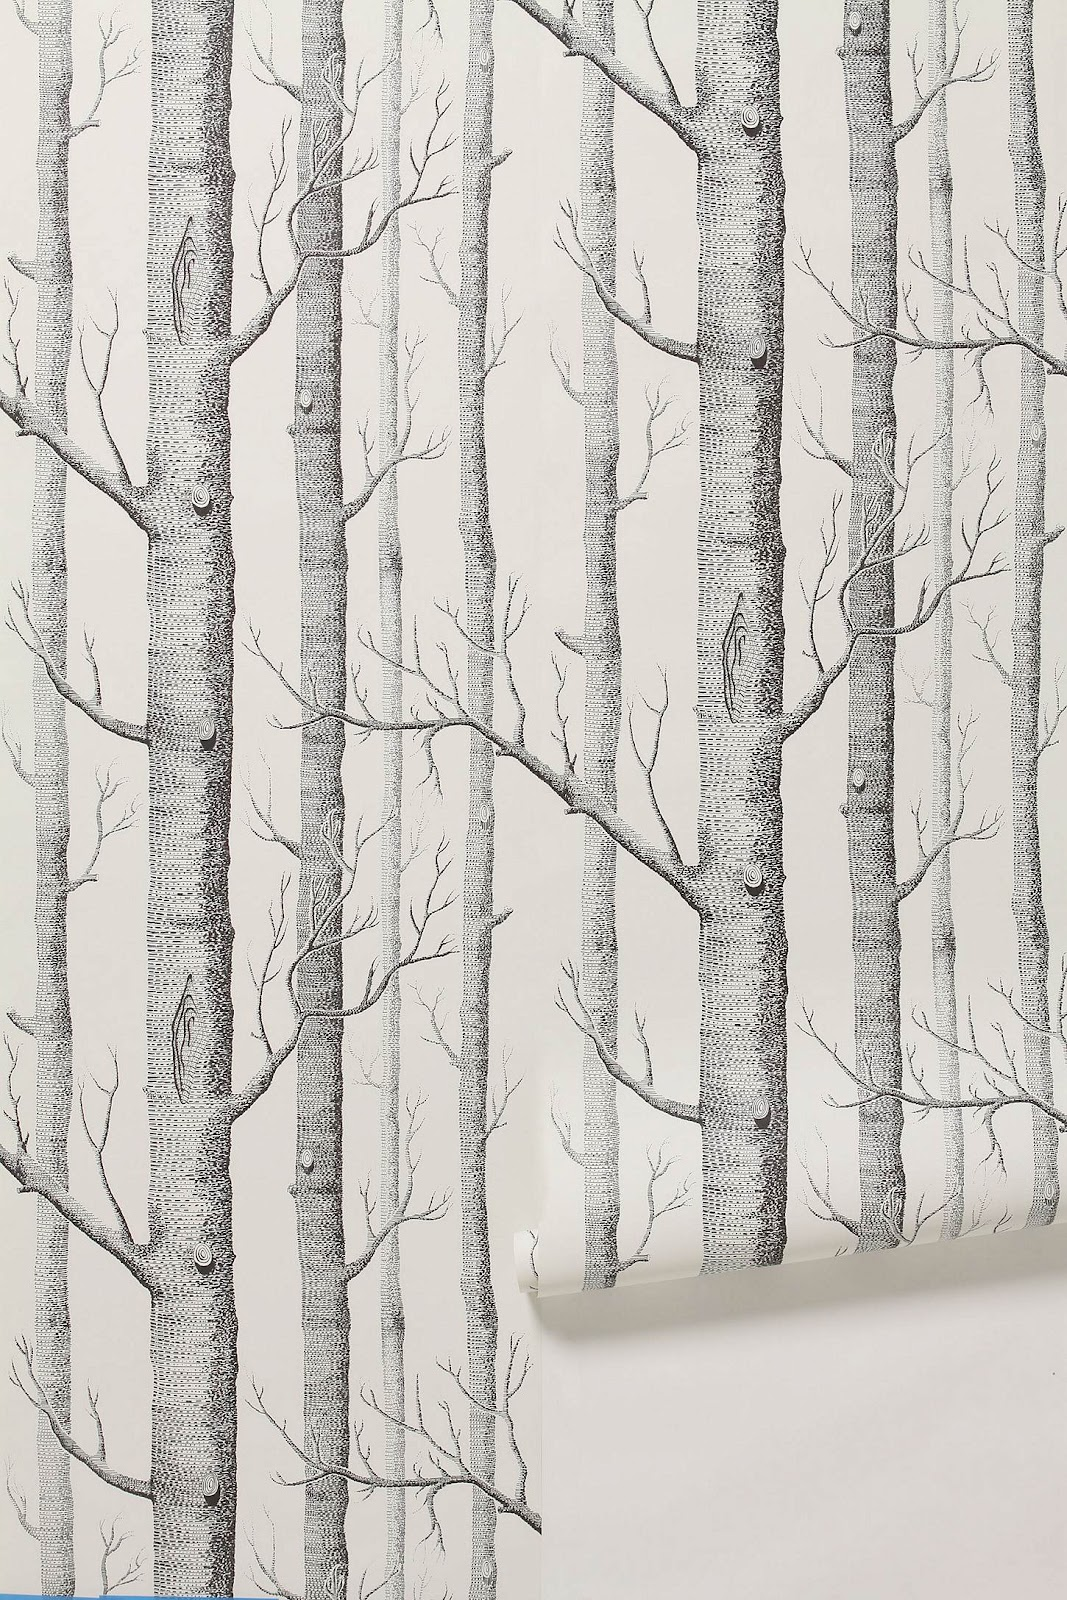 http://1.bp.blogspot.com/-2f9LzAM_SE0/T1kOUaCx9FI/AAAAAAAABJI/yfkpjtAWLfg/s1600/anthropologie%20wood%20trees%20forest%20wallpaper%20black%20and%20white%20gray%20modern.jpeg